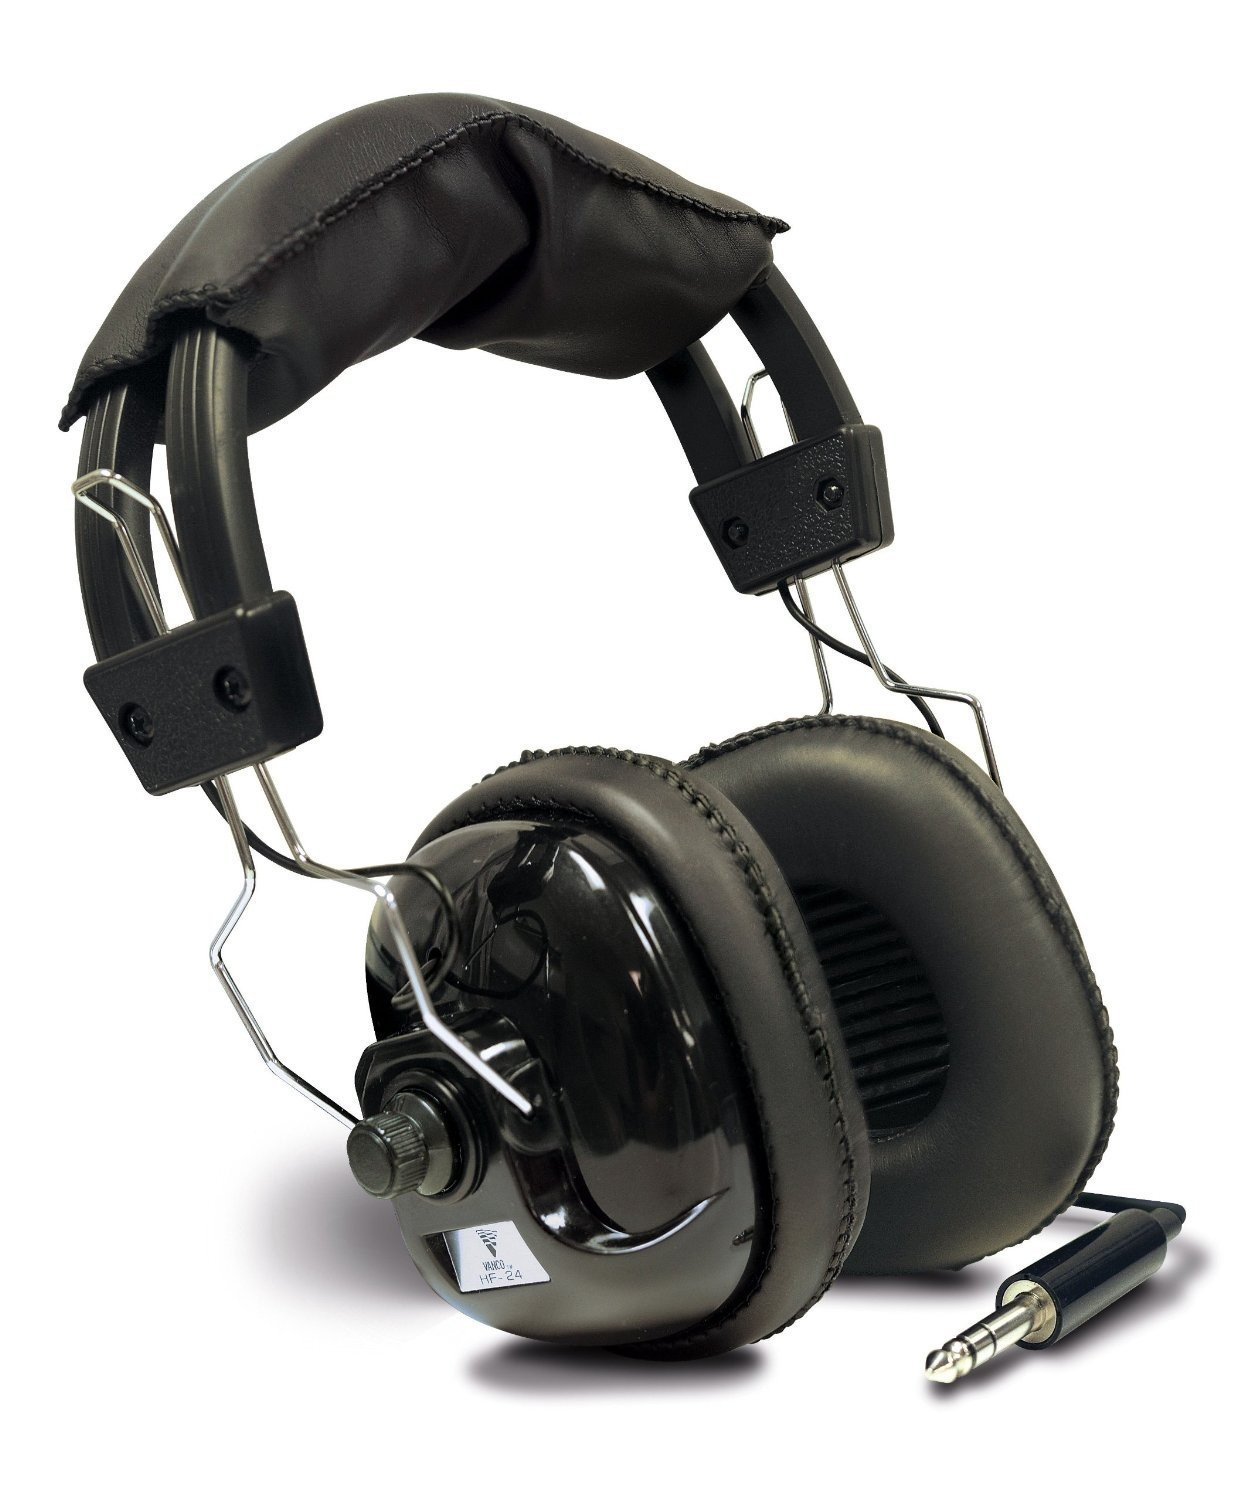 Amazon.com: Teknetics Professional Metal Detecting Headphones: Home Audio & Theater